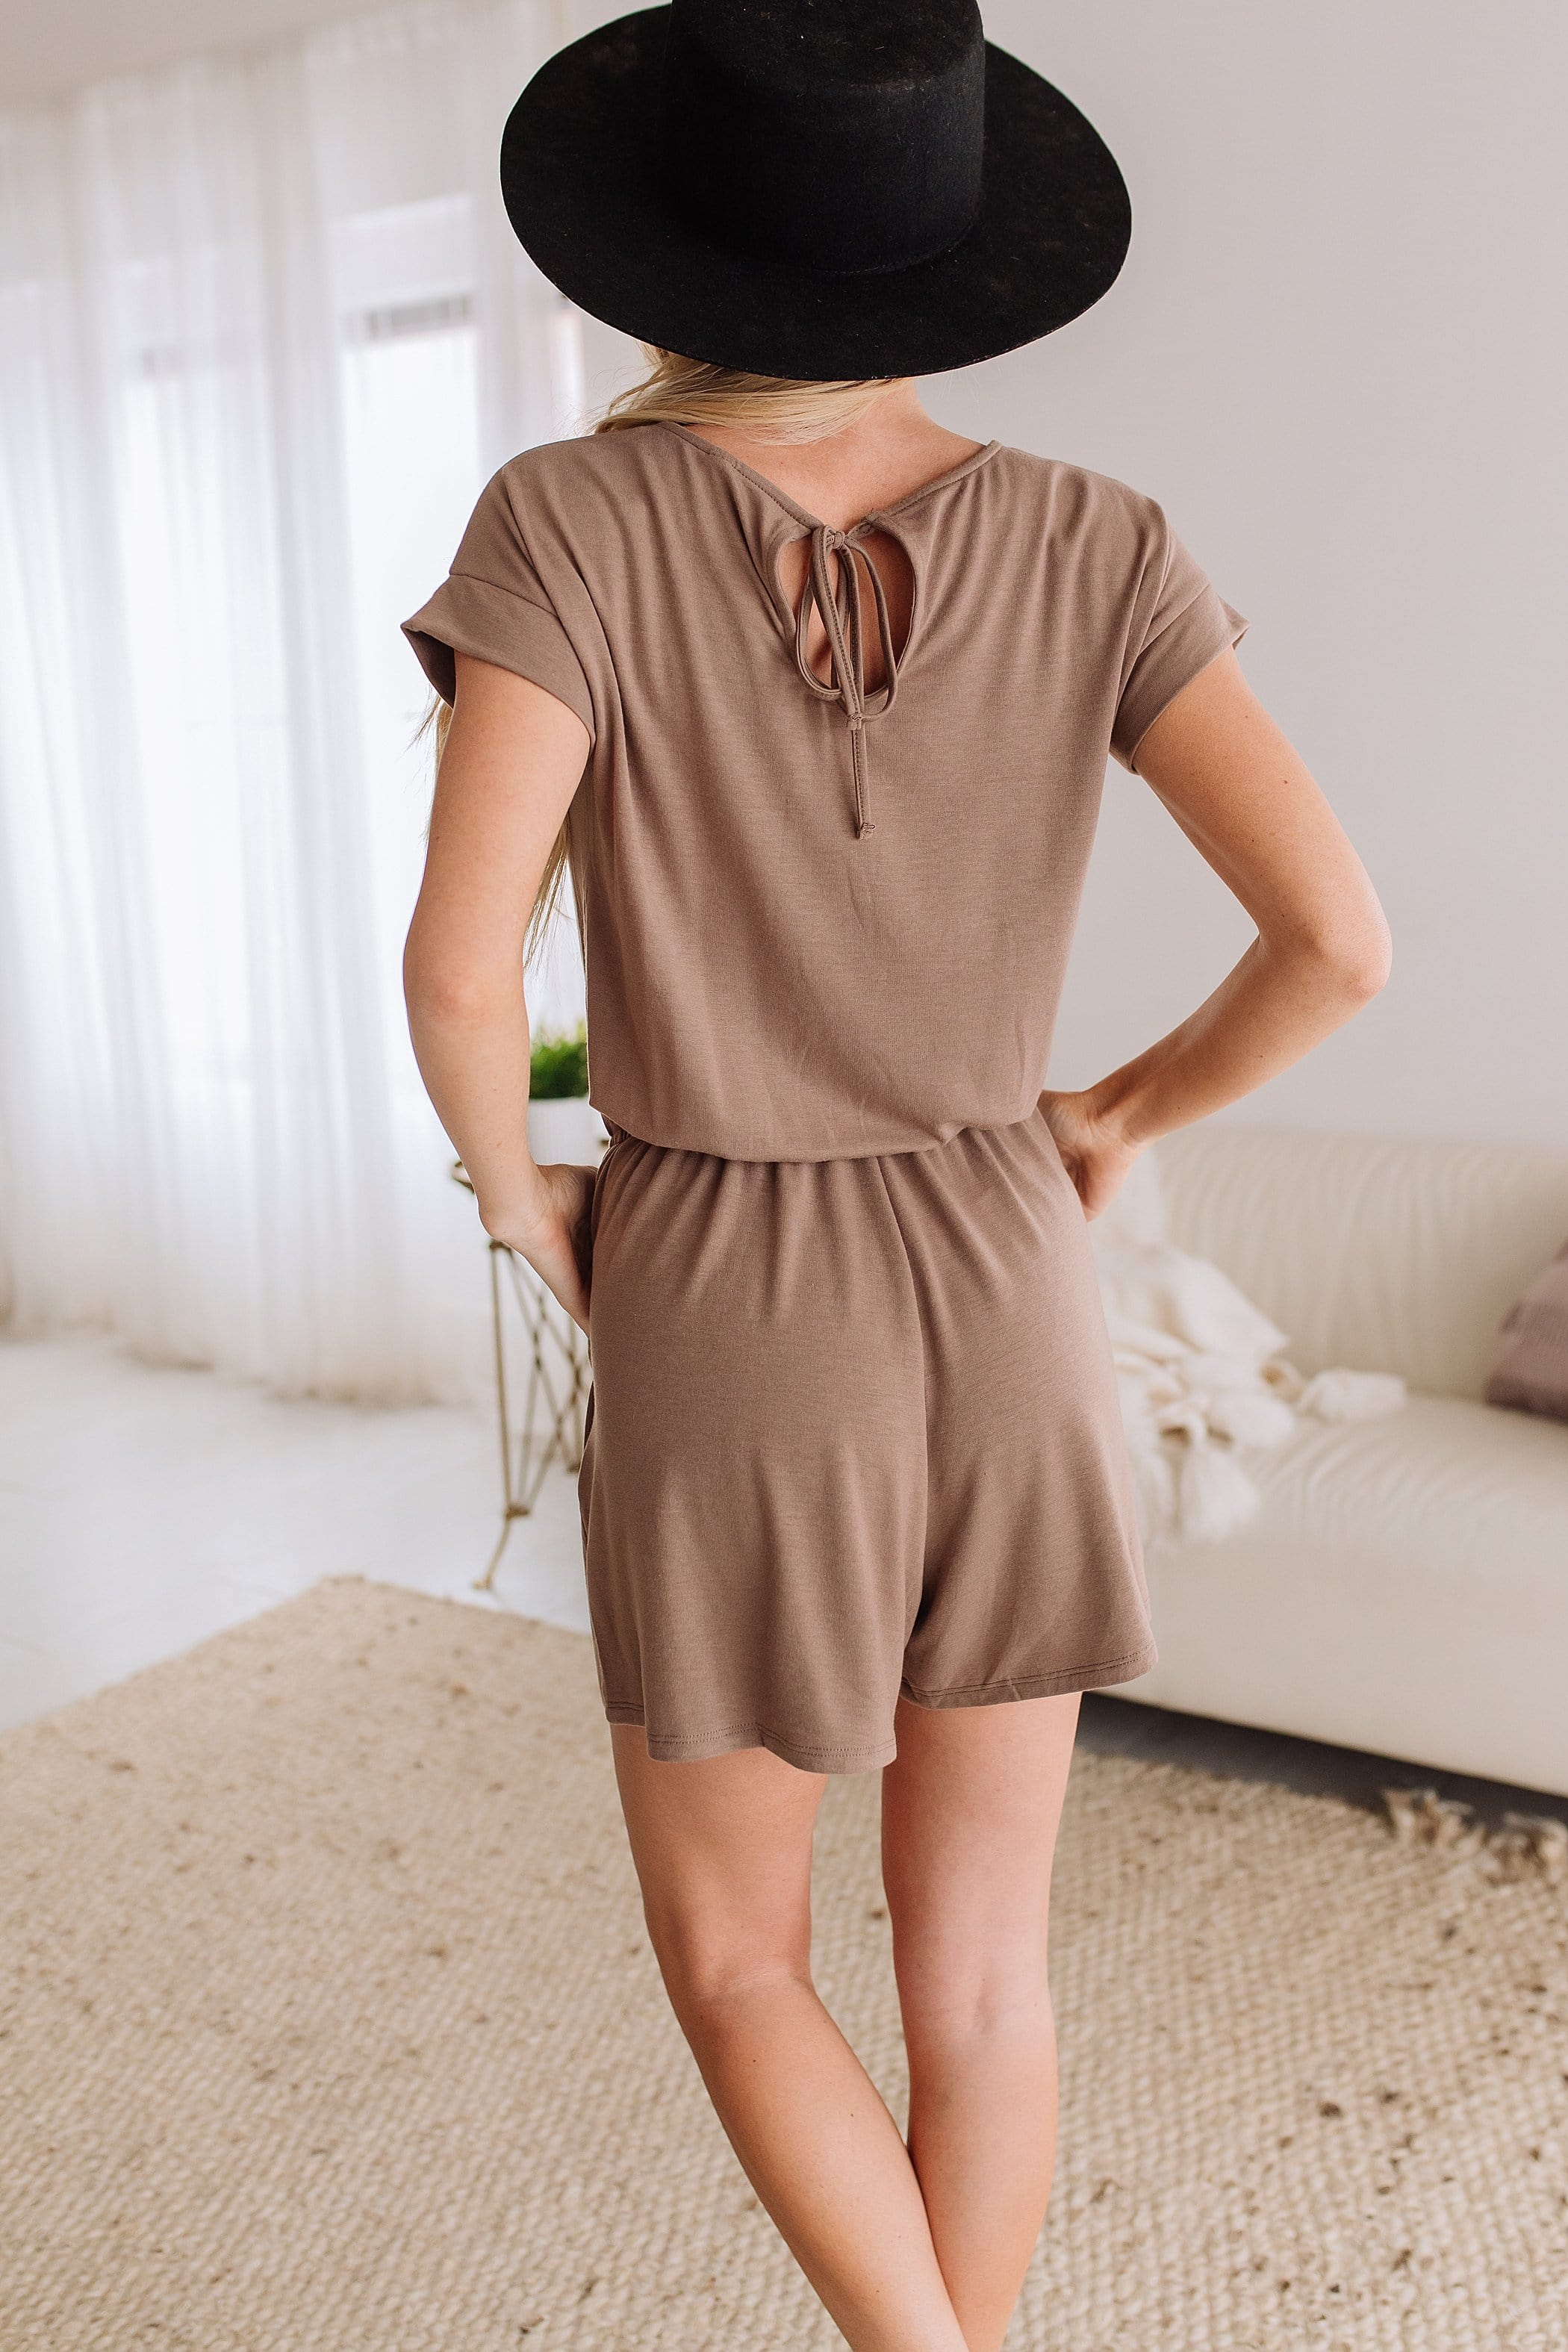 The Brindee Romper in Mocha and Titanium